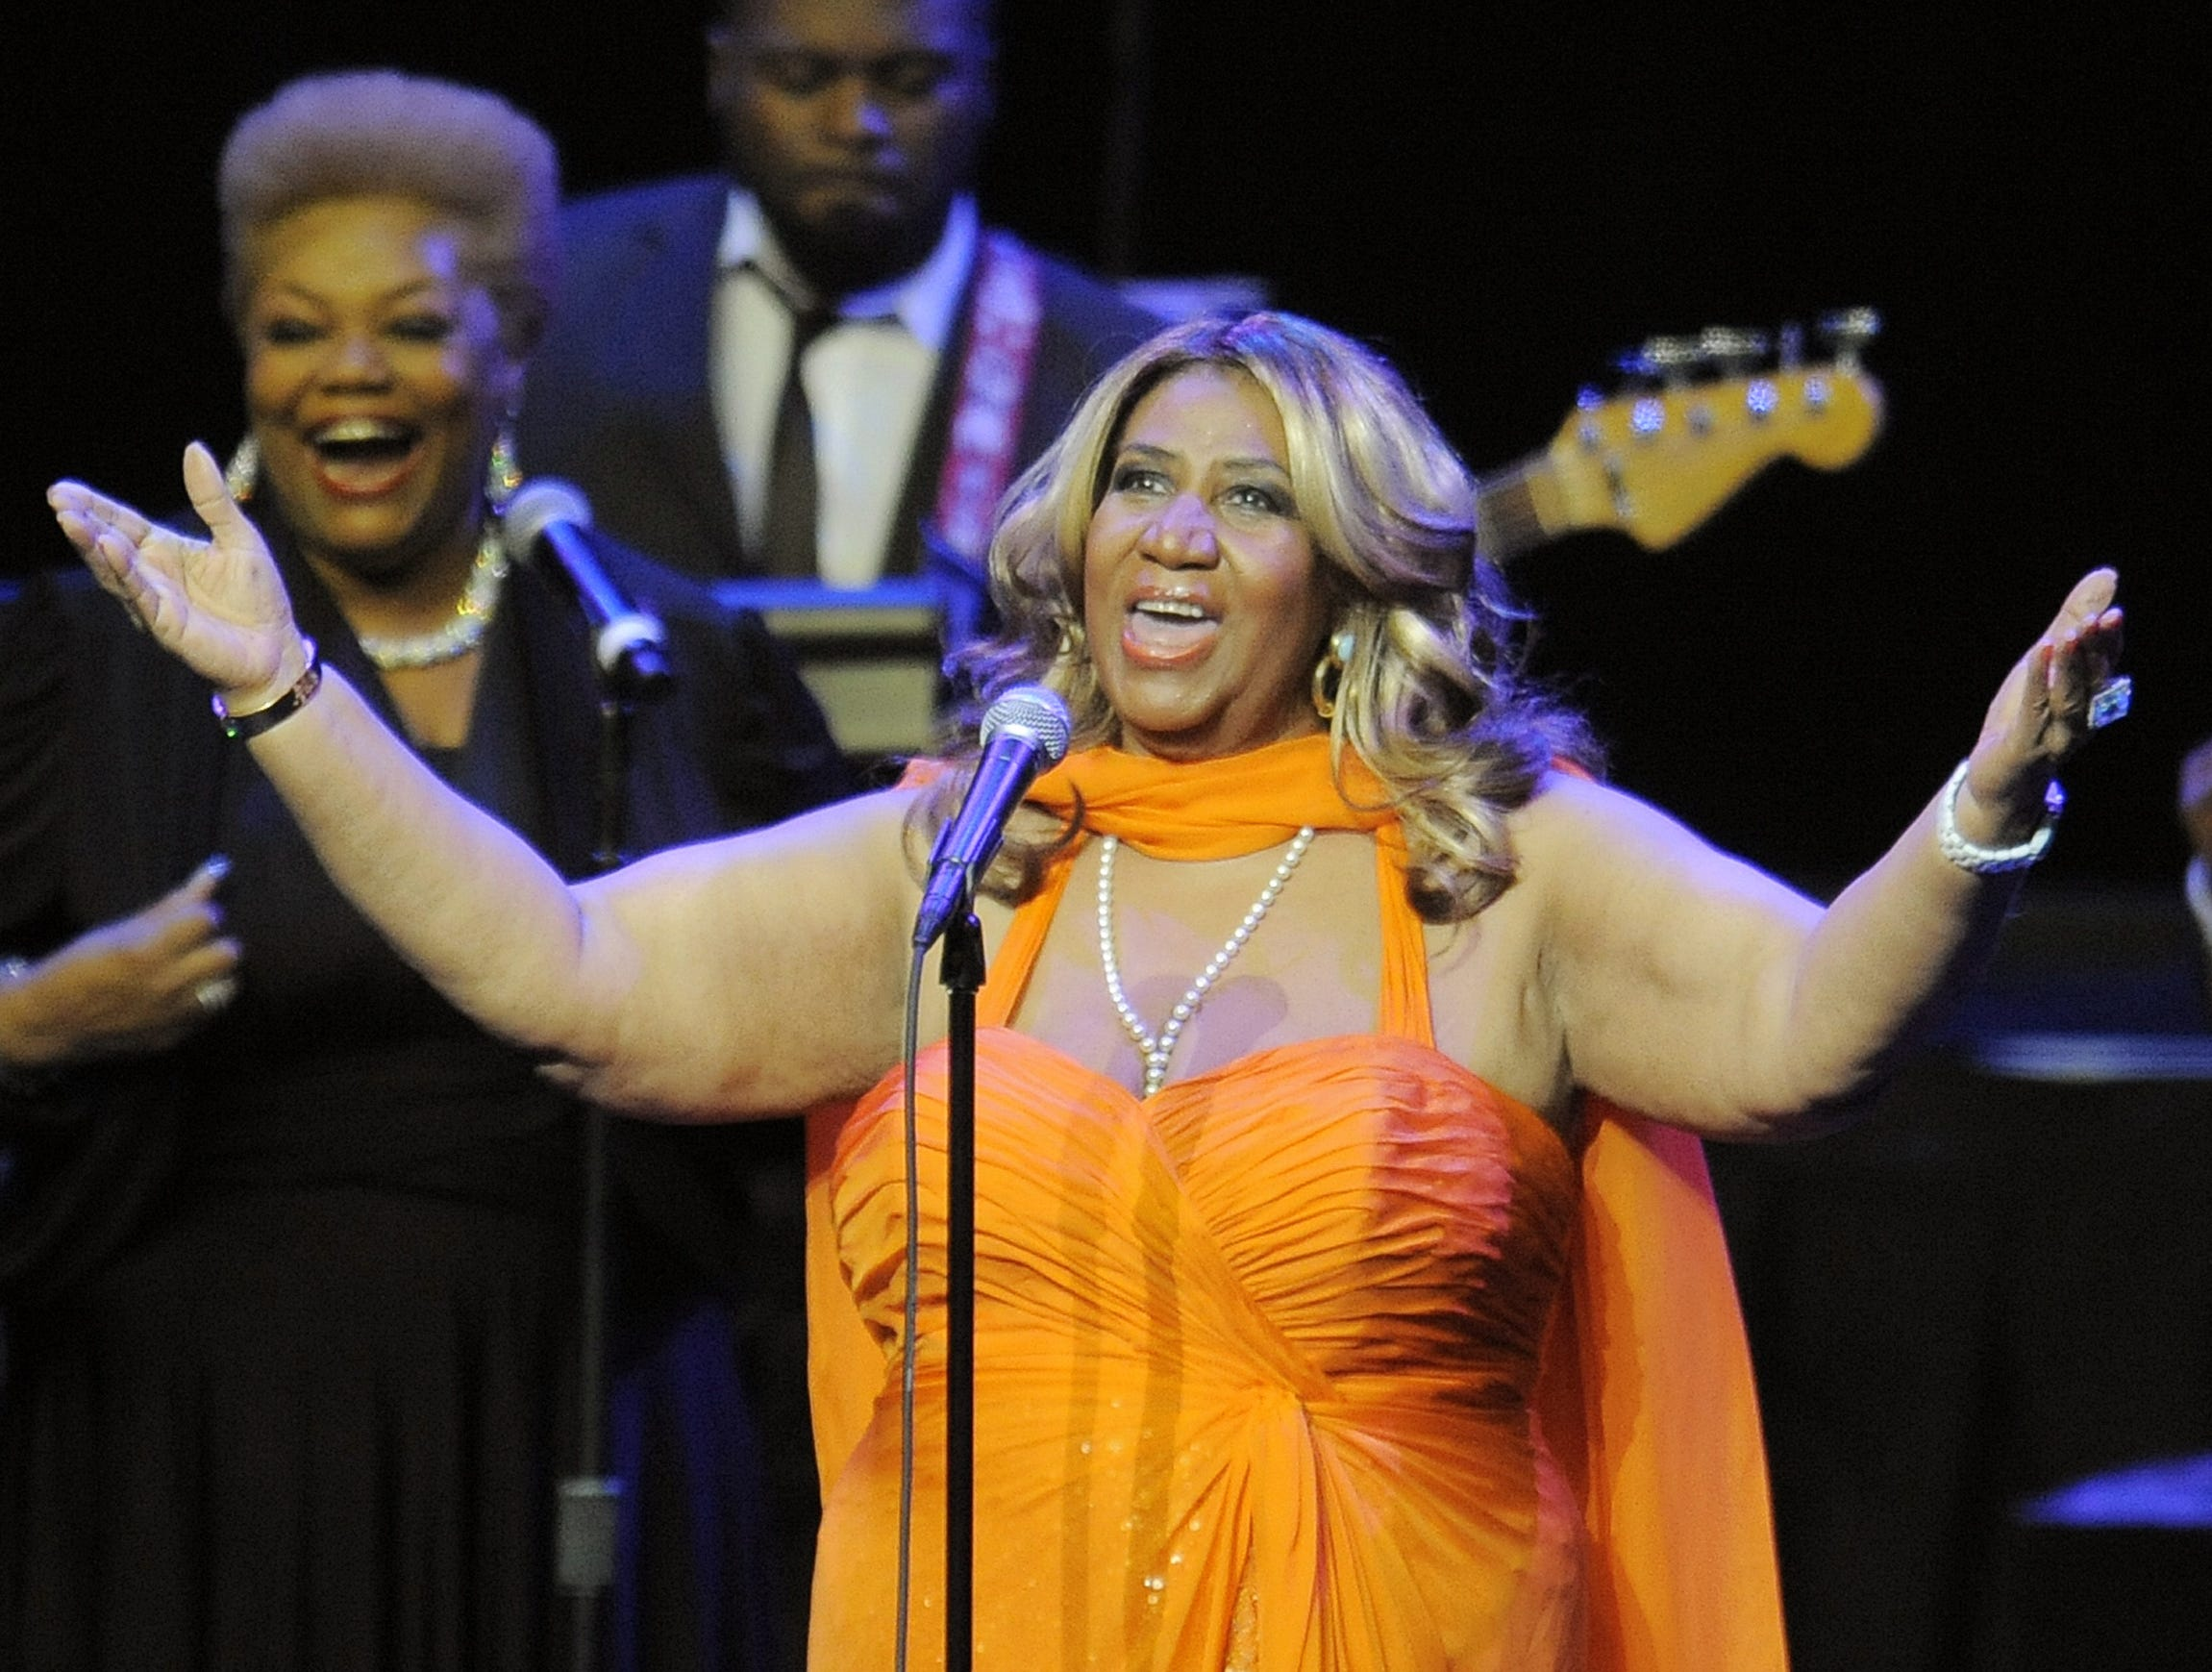 This July 25, 2012 file photo shows Aretha Franklin performing at the NOKIA Theatre L.A. LIVE in Los Angeles. Franklin headlined the annual McDonald's Gospelfest at the Prudential Center in Newark, N.J. on Saturday, May 11, 2013. She was also preparing for something else: a meeting about her upcoming biopic. The 71-year-old singer said in an interview Thursday, May 9, 2013, that she was holding a meeting to figure out the plans for the film, which has been in the works for years.